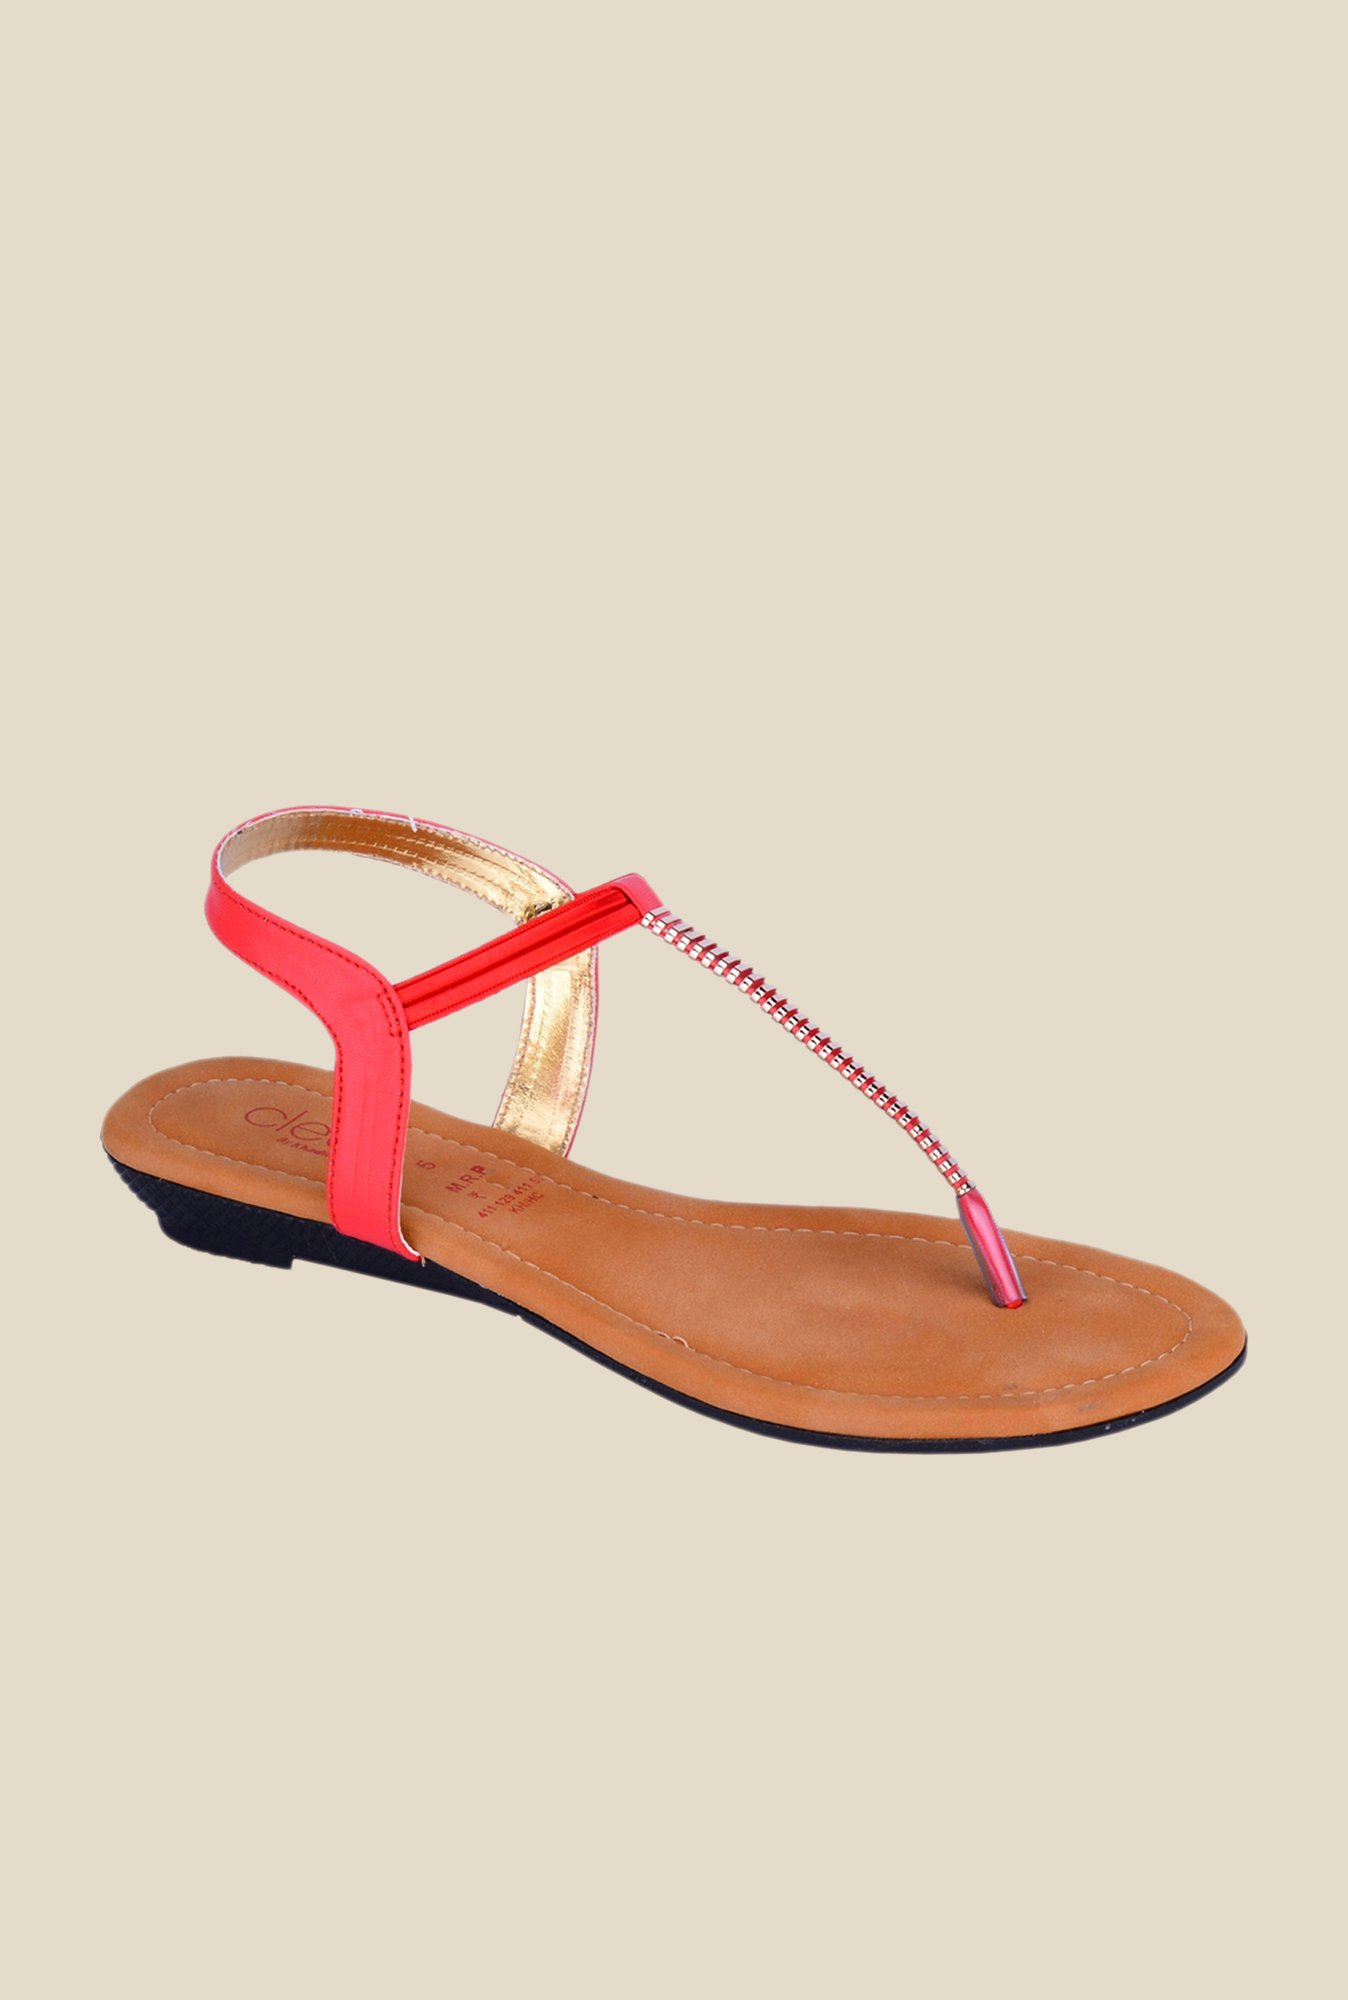 Khadim's Cleo Red Sling Back Sandals